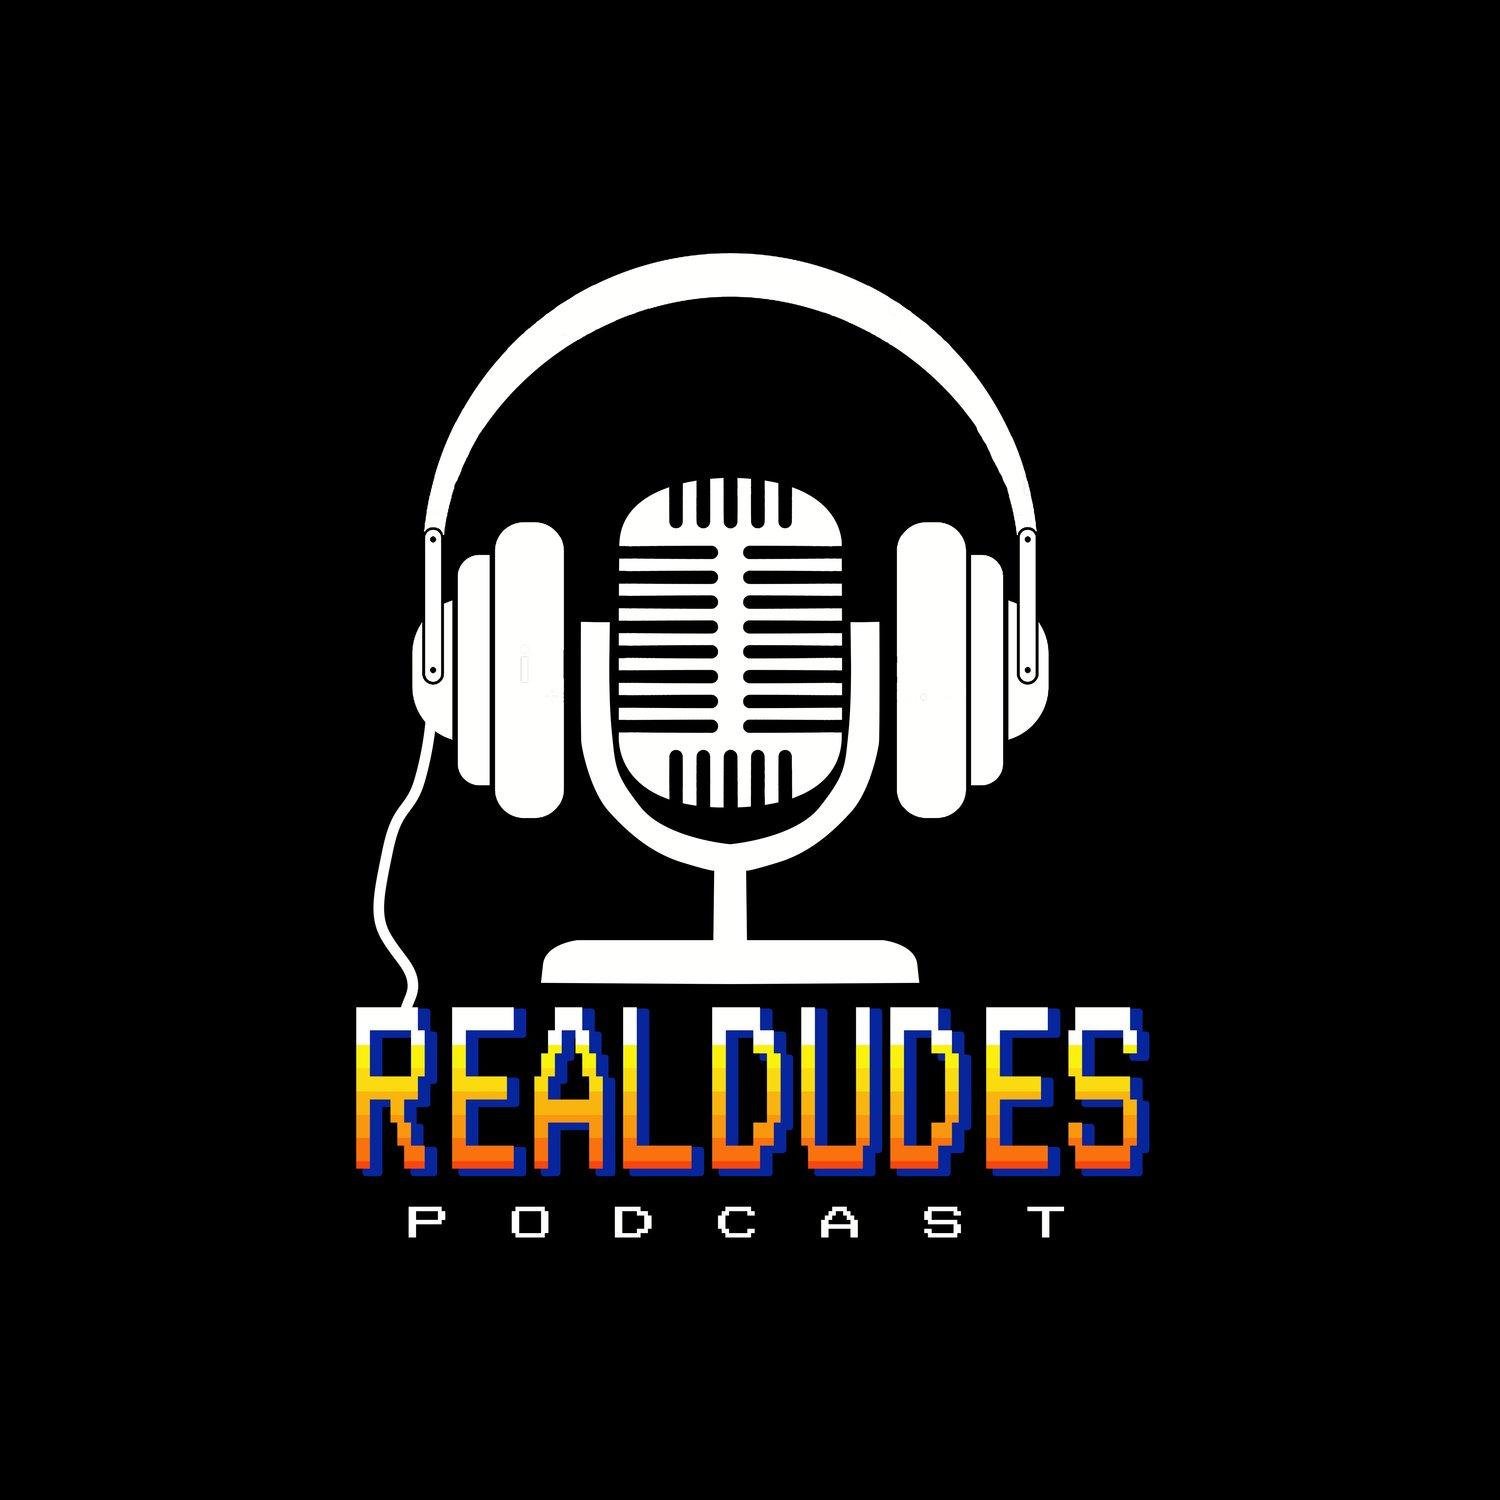 The real dudes podcast logo.